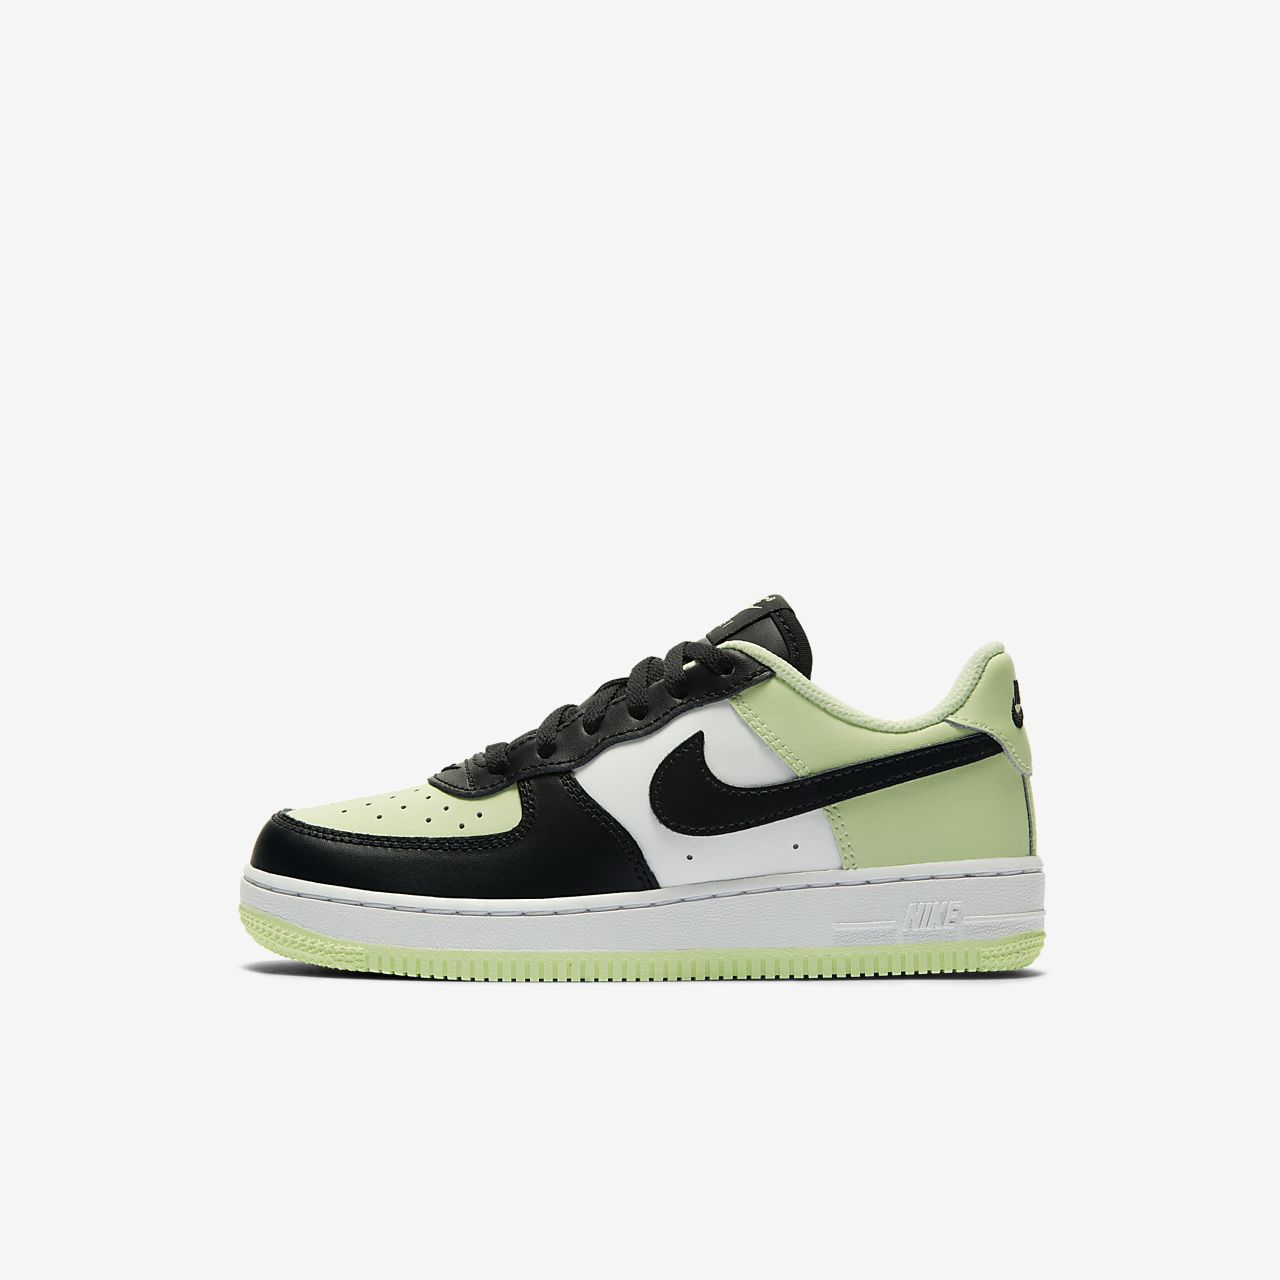 Sko Nike Force 1 Low för barn